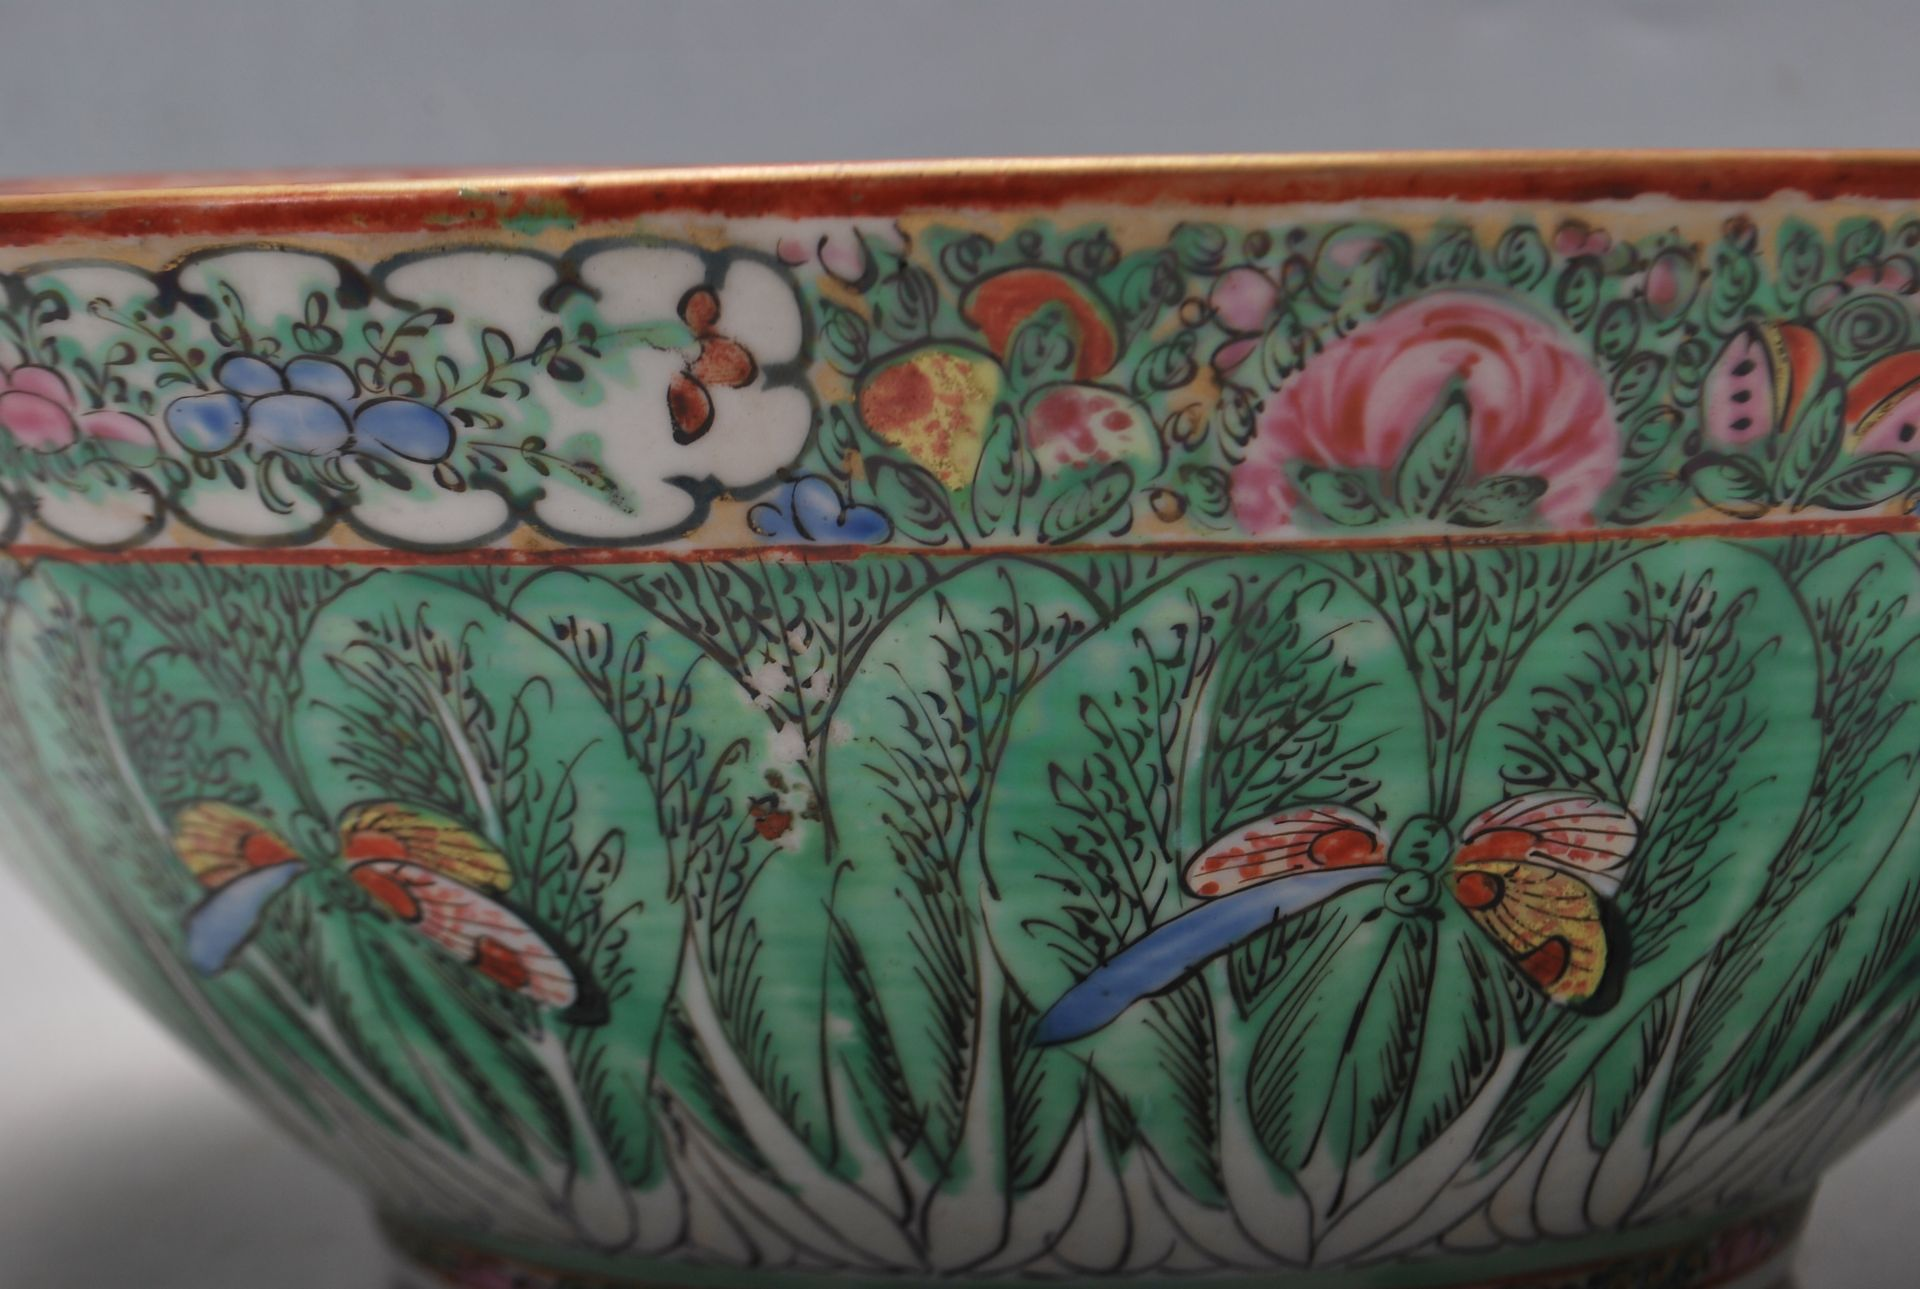 19TH CENTURY CHINESE ORIENTAL CENTRE PIECE BOWL - Image 11 of 11